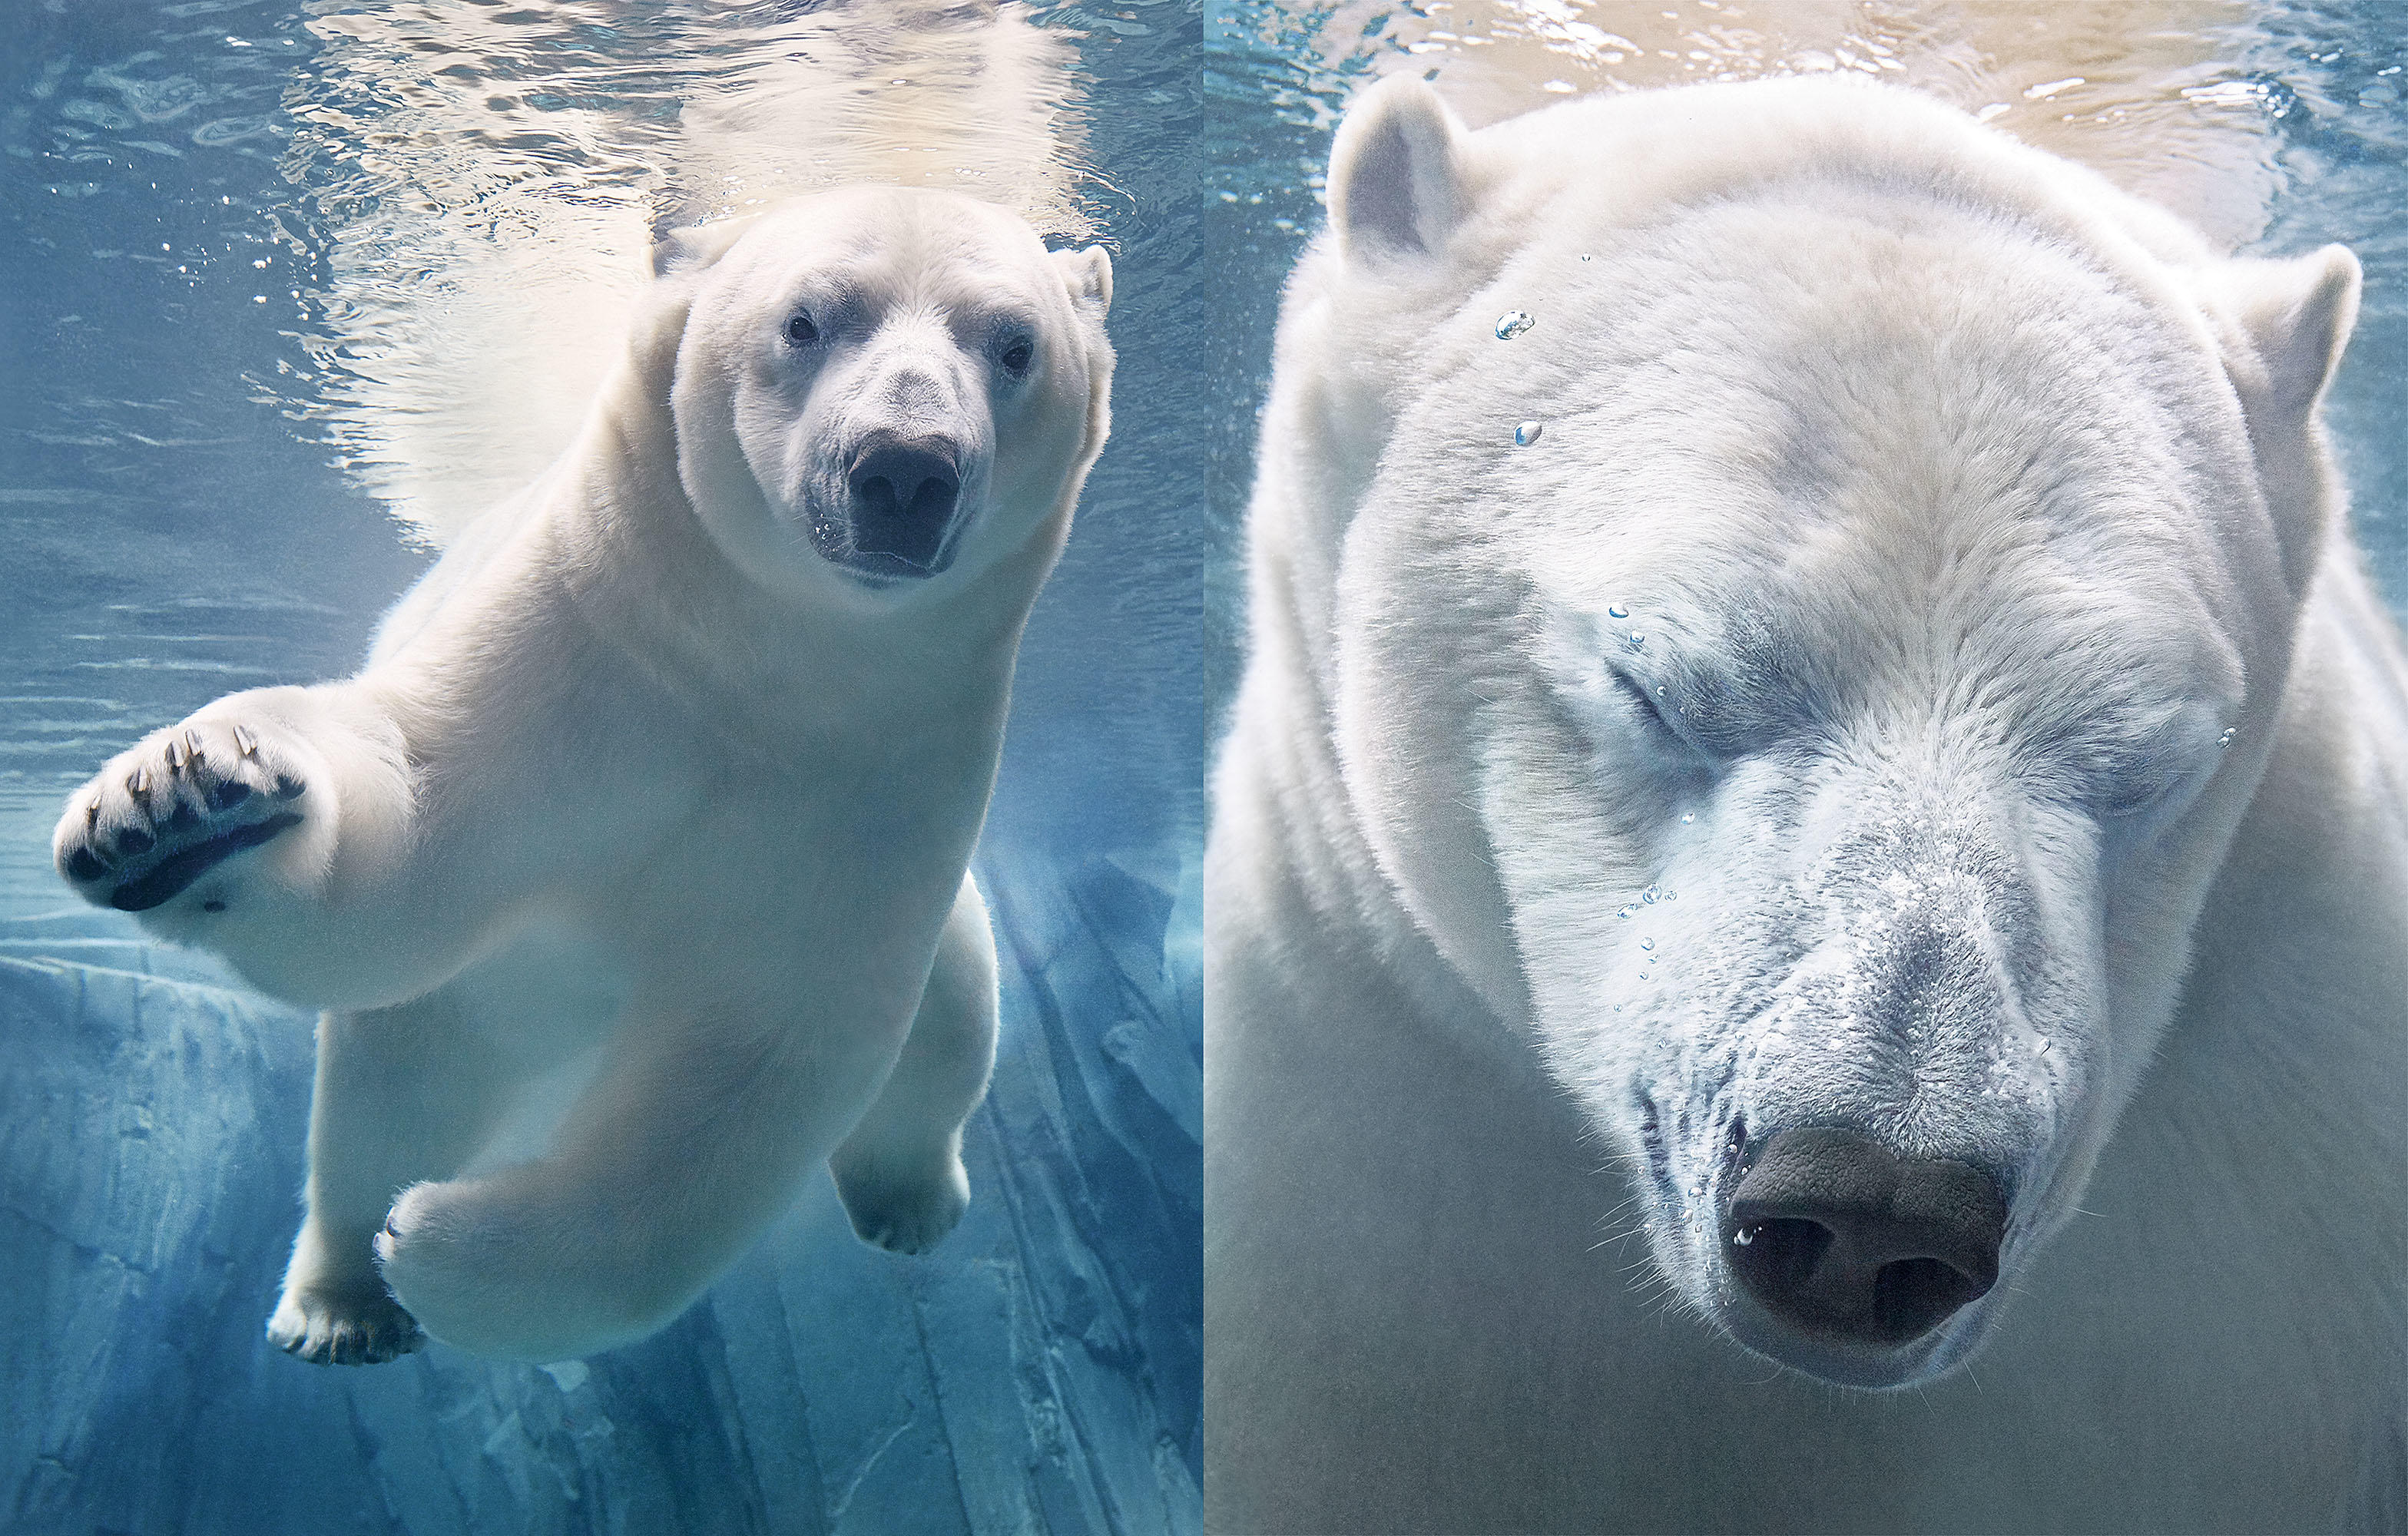 Tim_Flach_Polar Bears.jpg